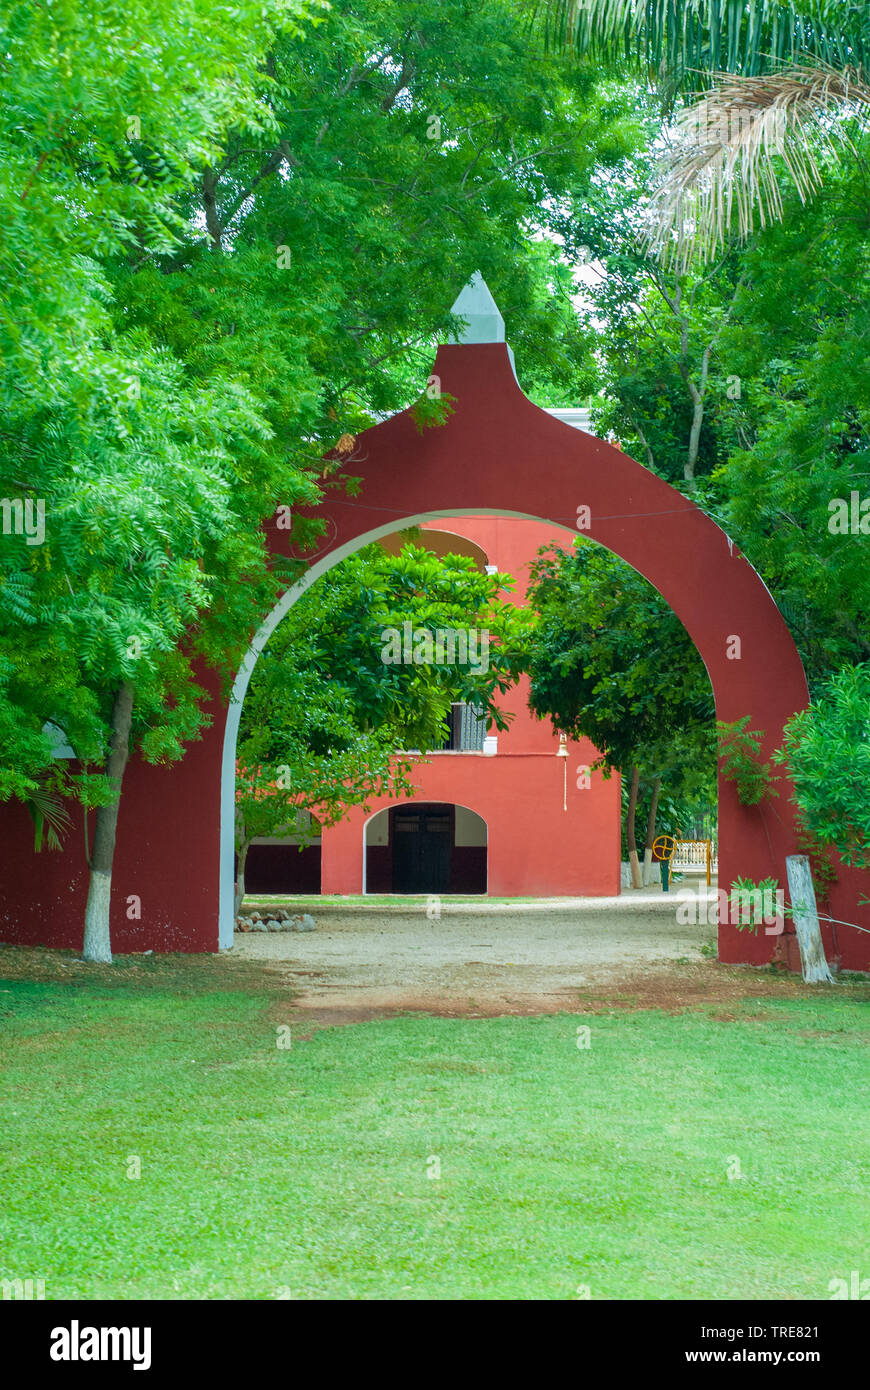 Entrance arch of a Tecoh farm, in the Yucatan peninsula - Stock Image